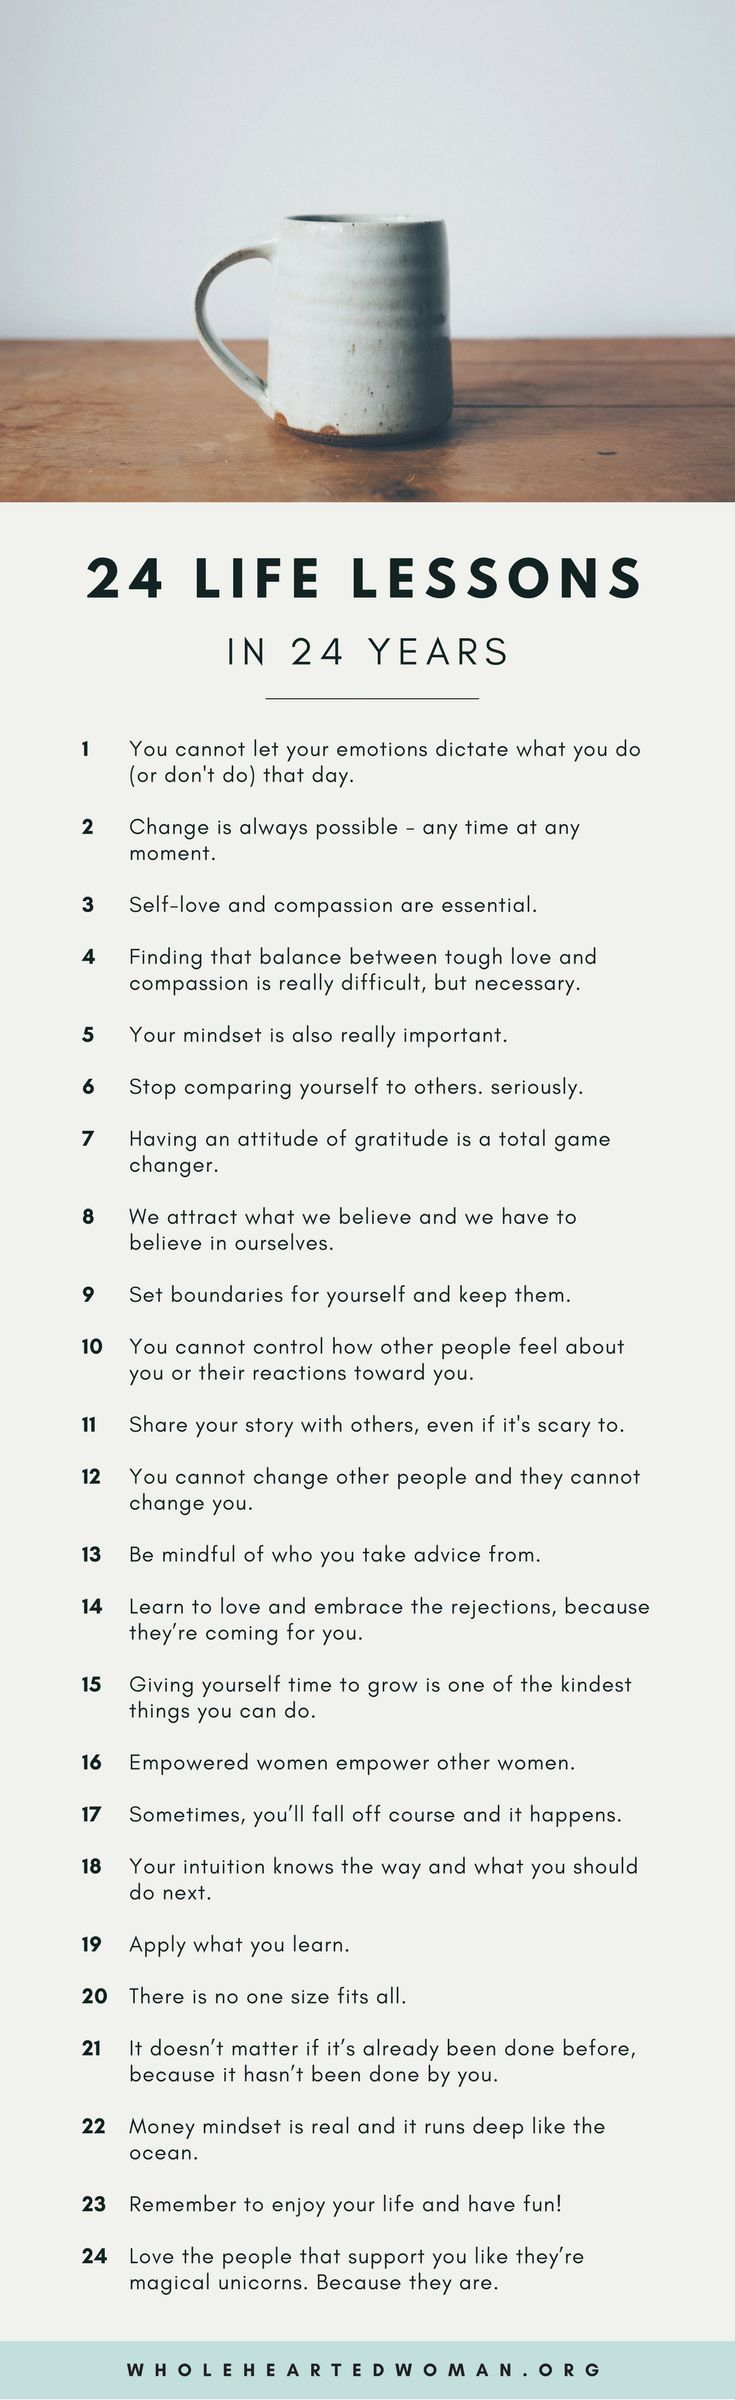 24 Life Lessons in 24 Years | Life Advice | Personal Growth & Development | …